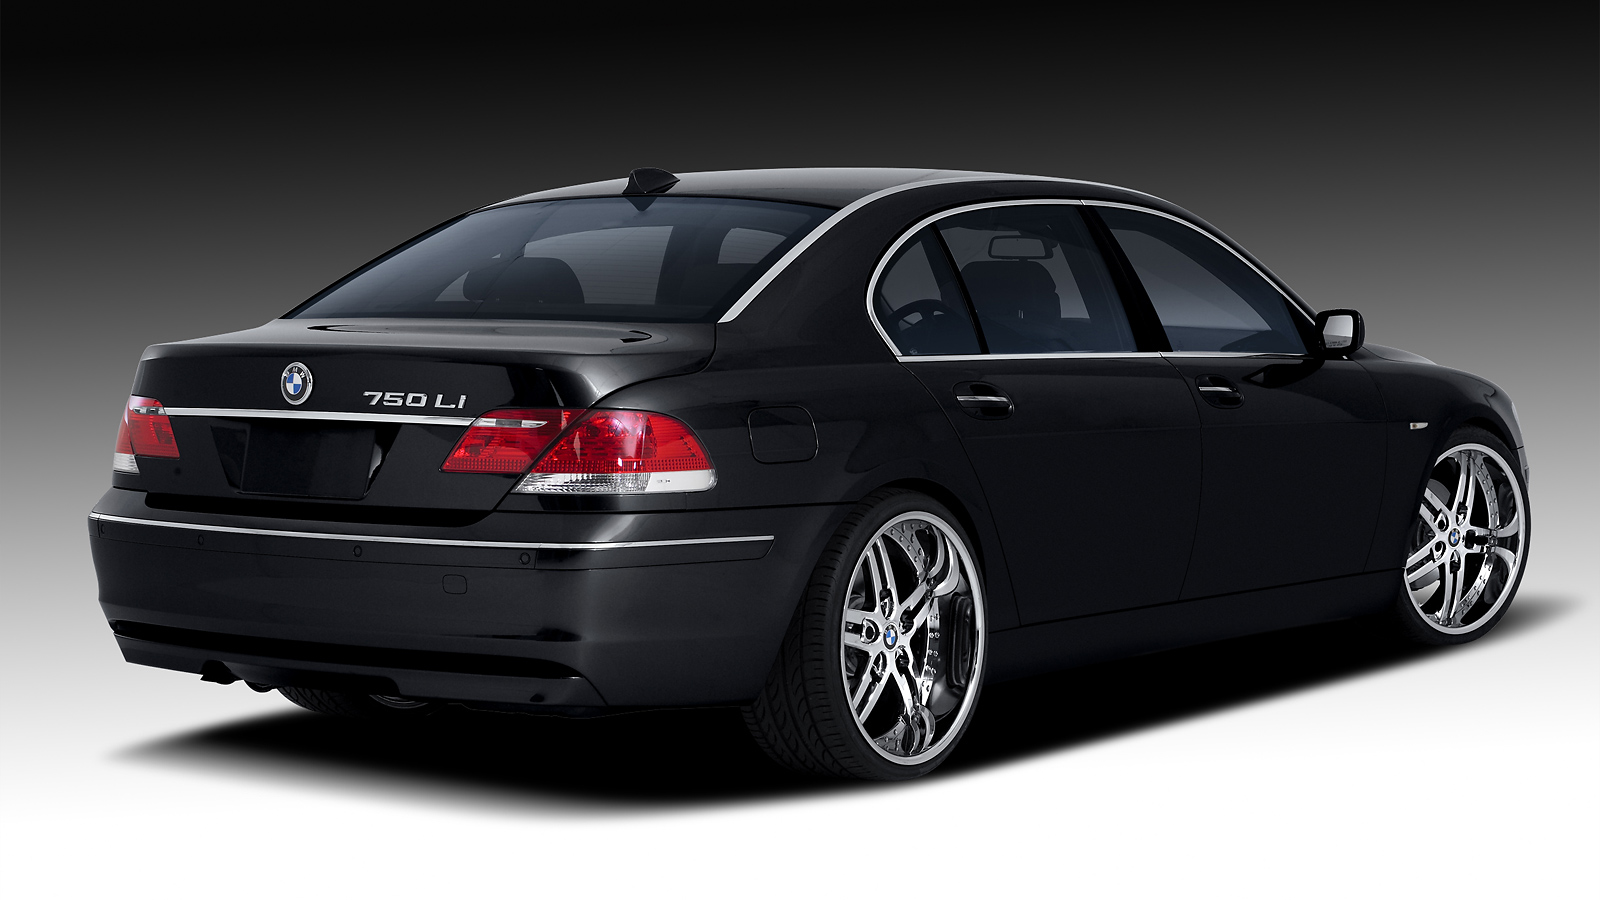 Official BMW 7 Series THREAD POST THEM UP